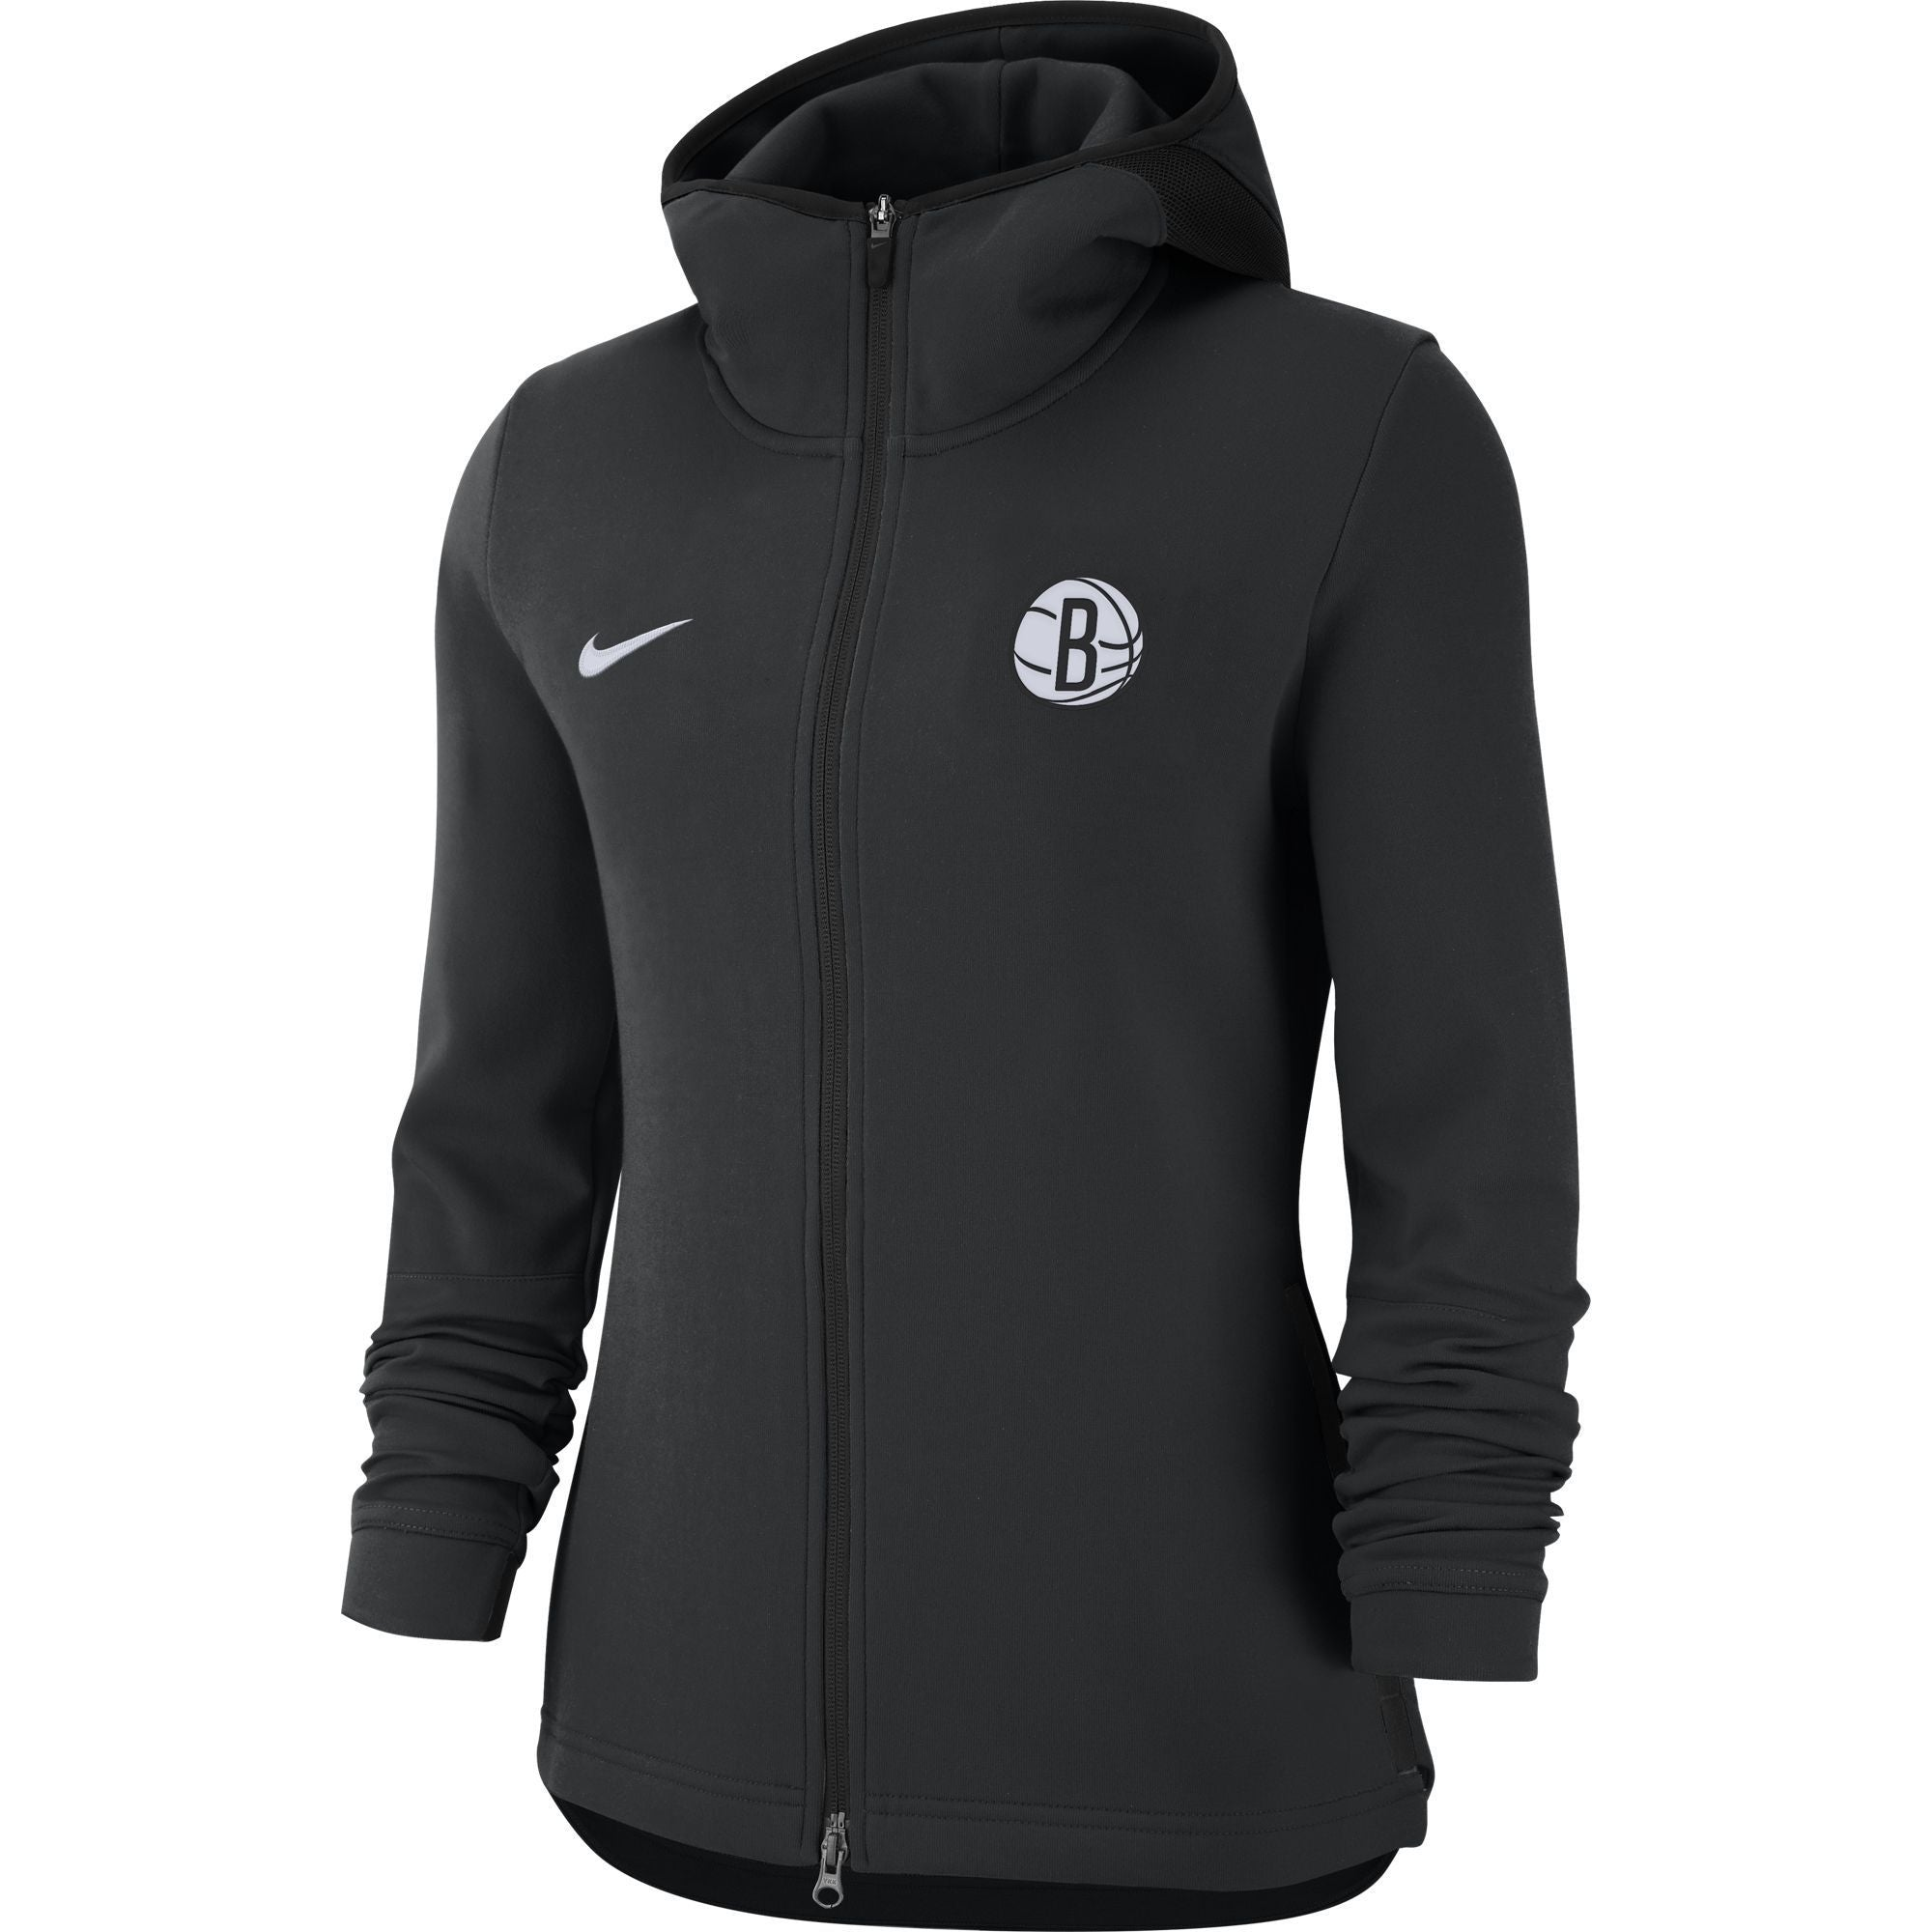 Nike Sweatshirts BLK / XS Brooklyn Nets Women'S Nike On Court Full Zip Showtime Hoodie - Black